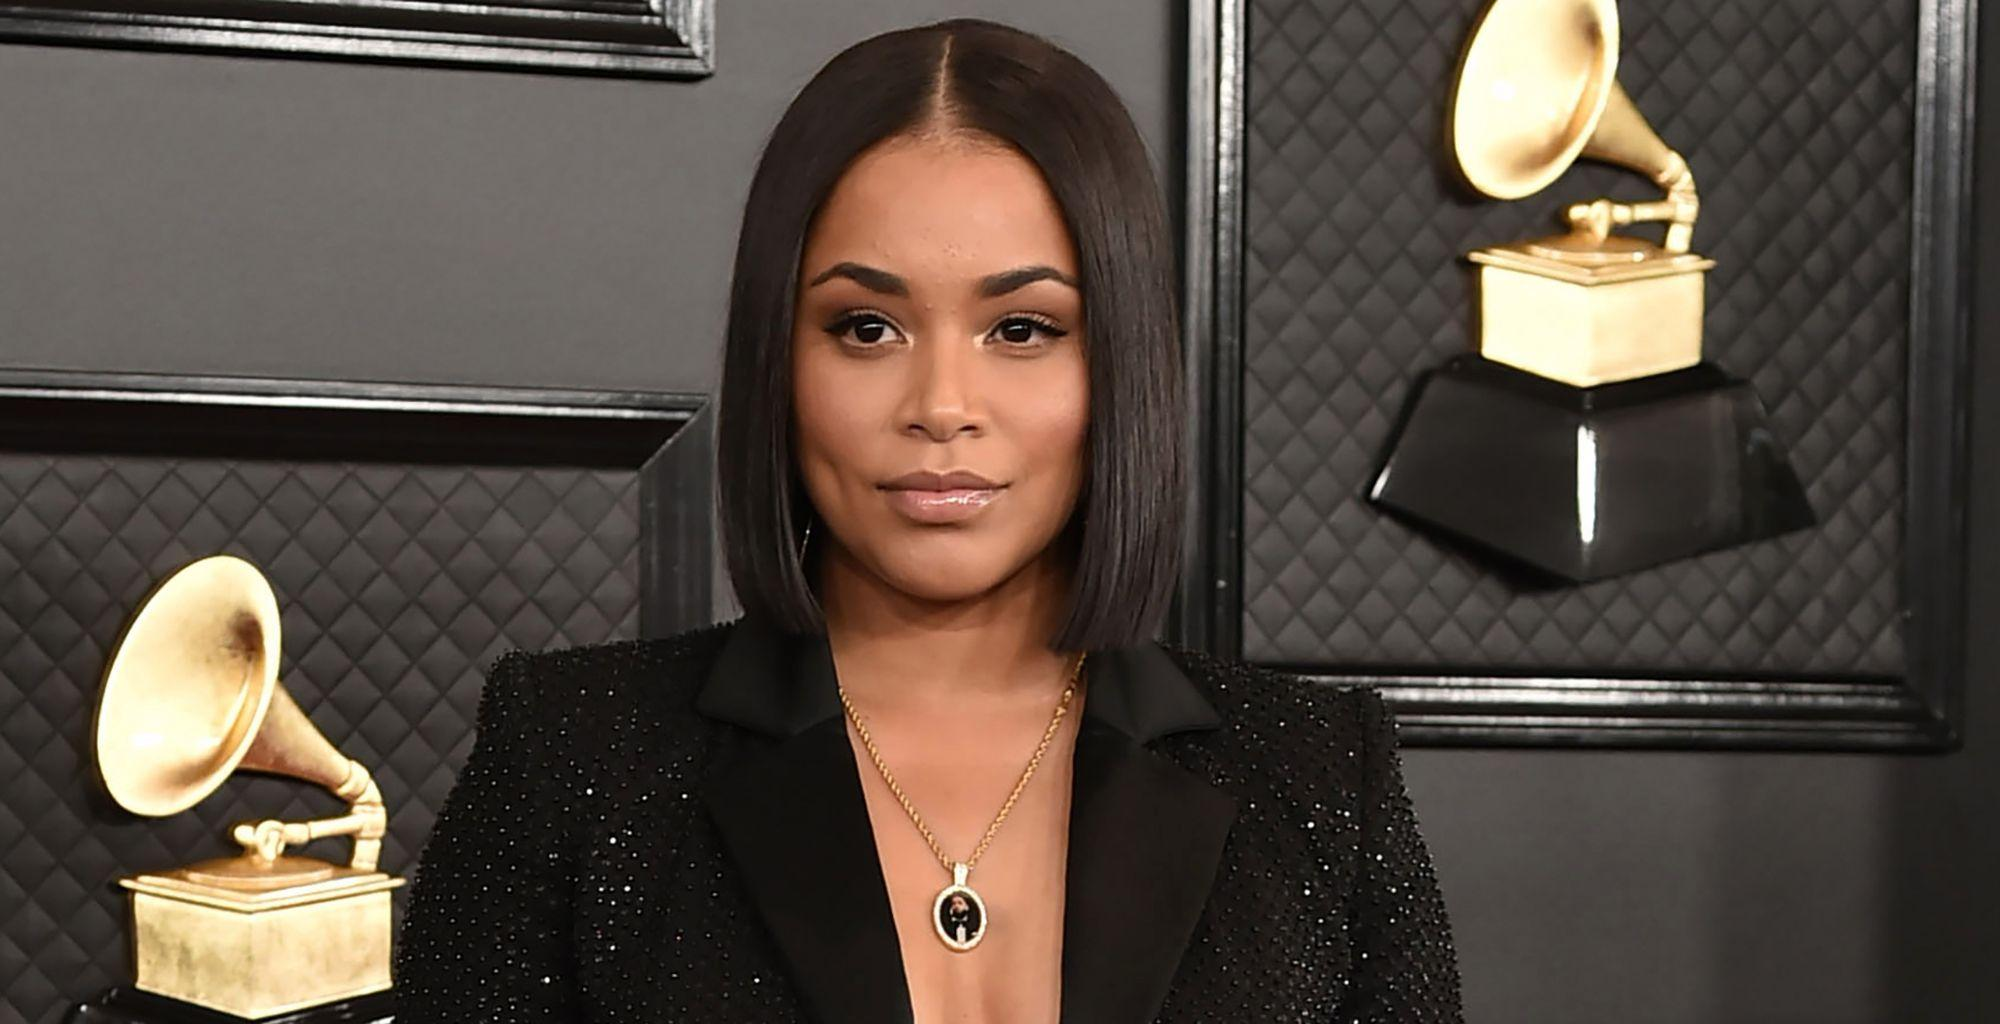 Lauren London Slams Pregnancy Rumors After Publication Falsely Claims She Is Planning A Baby Shower!